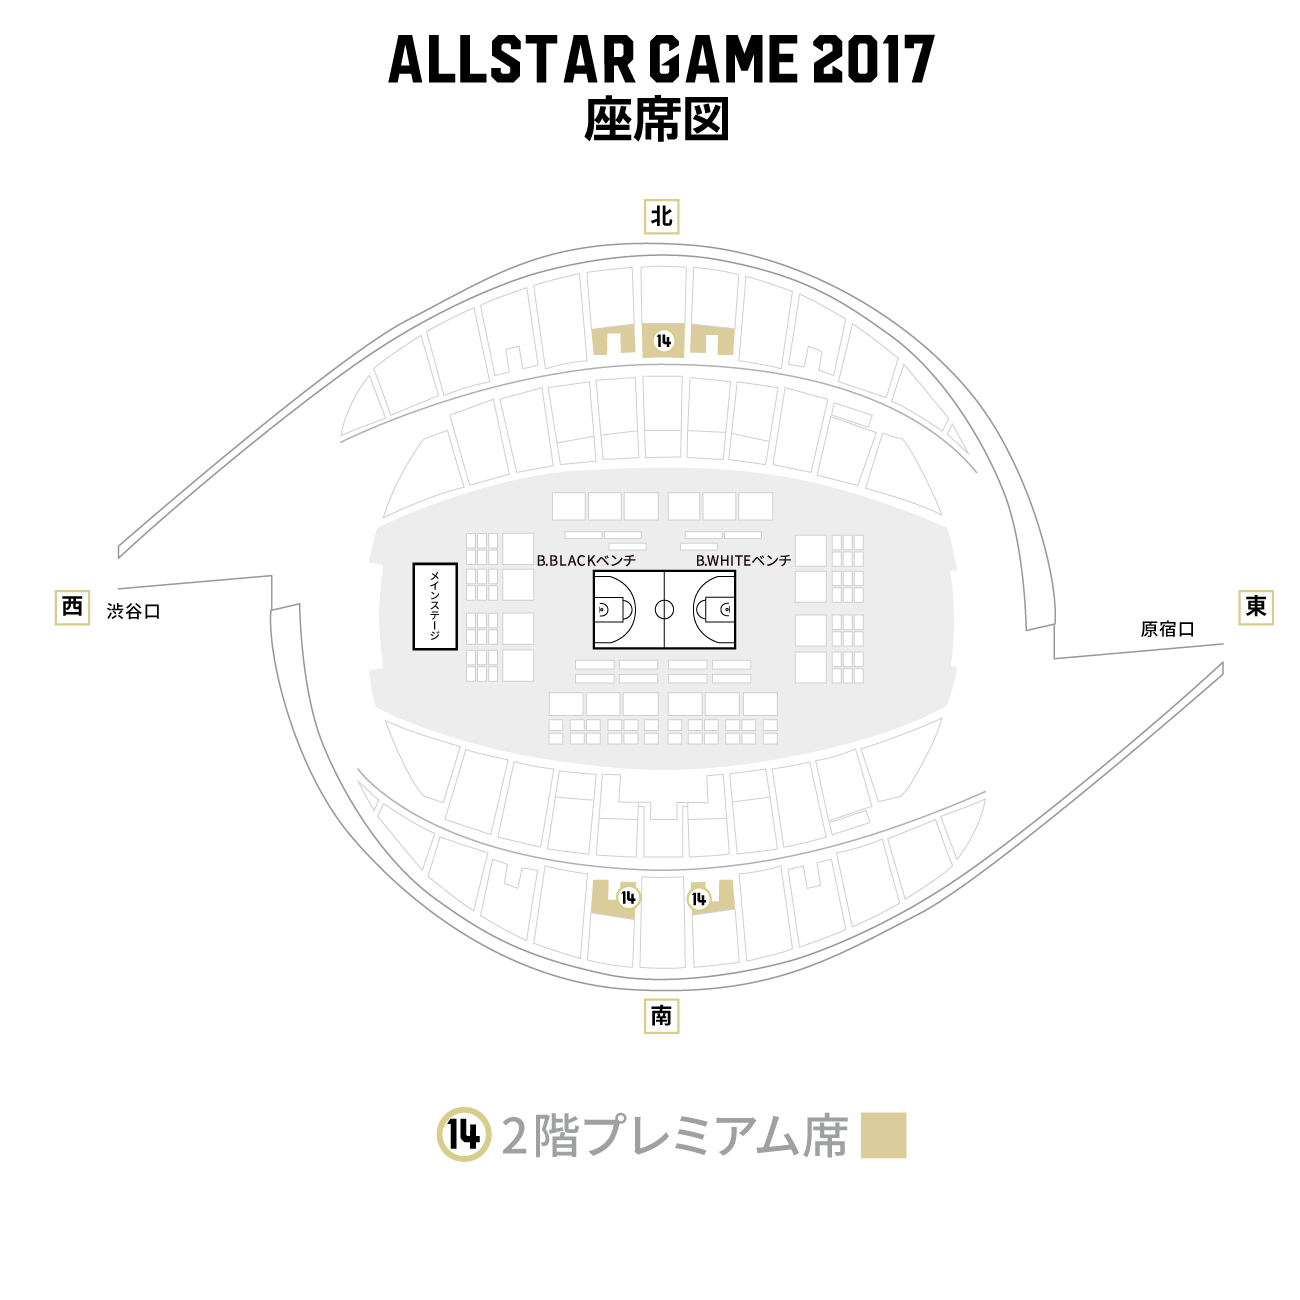 seatview_seat_14.png